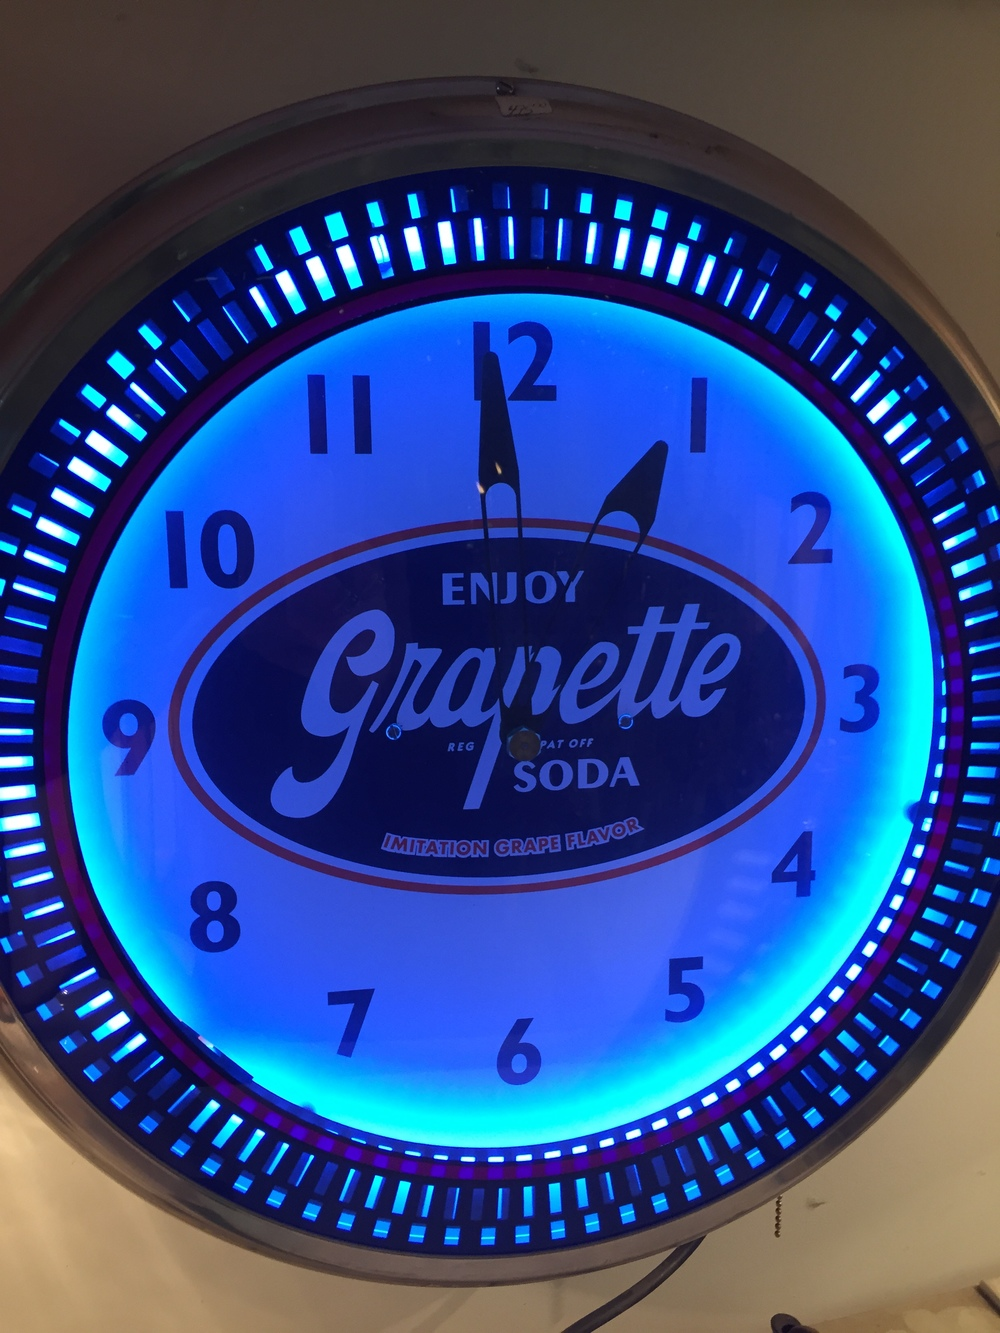 Grapette Soda Clock.JPG